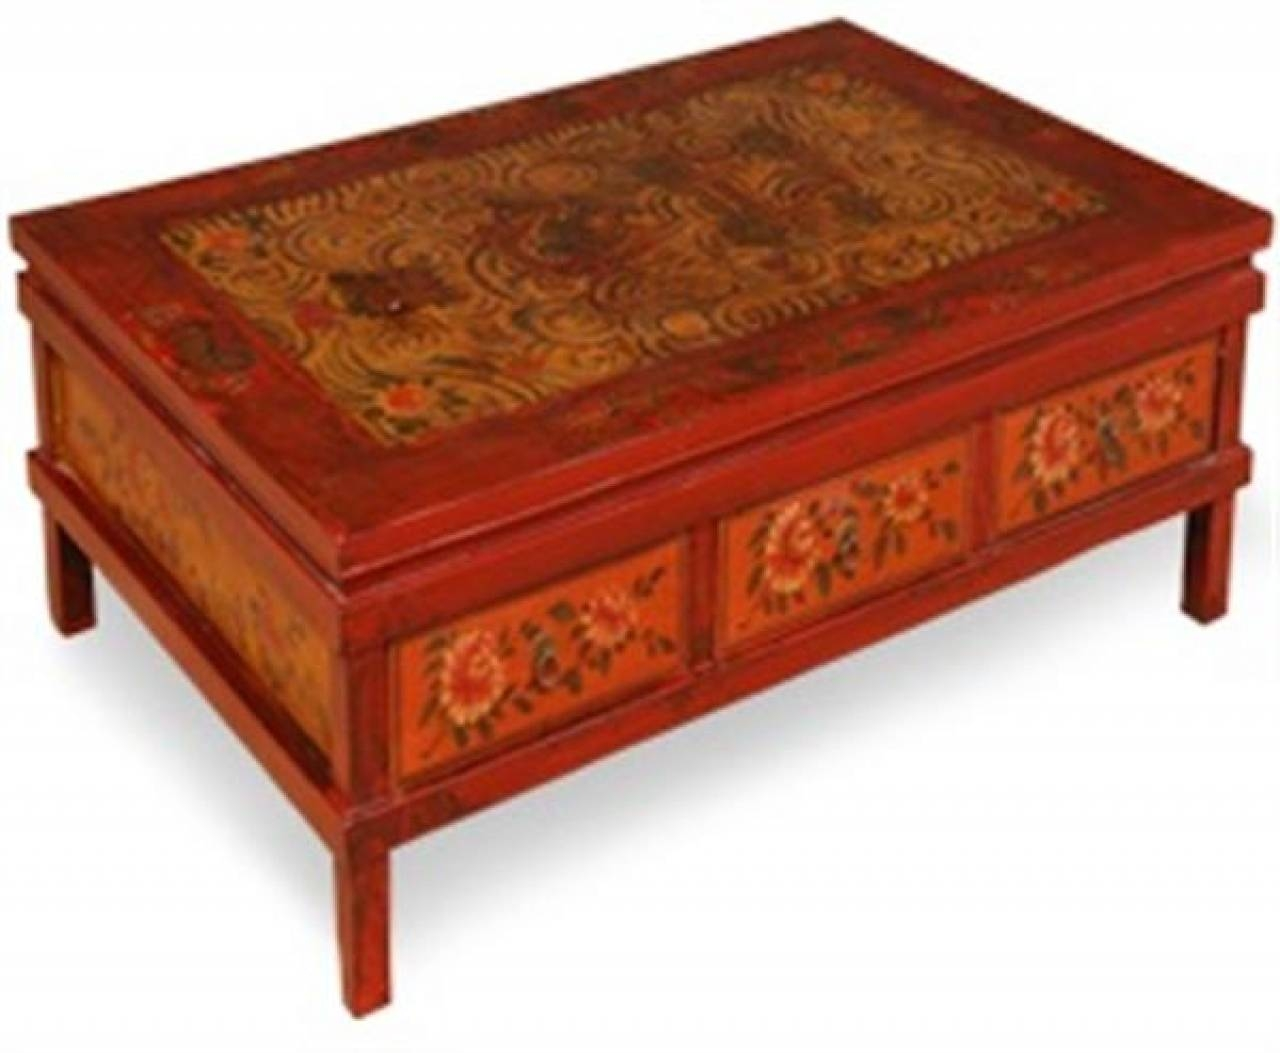 Asian Coffee Table: Images And Photos Objects – Hit Interiors with regard to Asian Coffee Tables (Image 5 of 30)